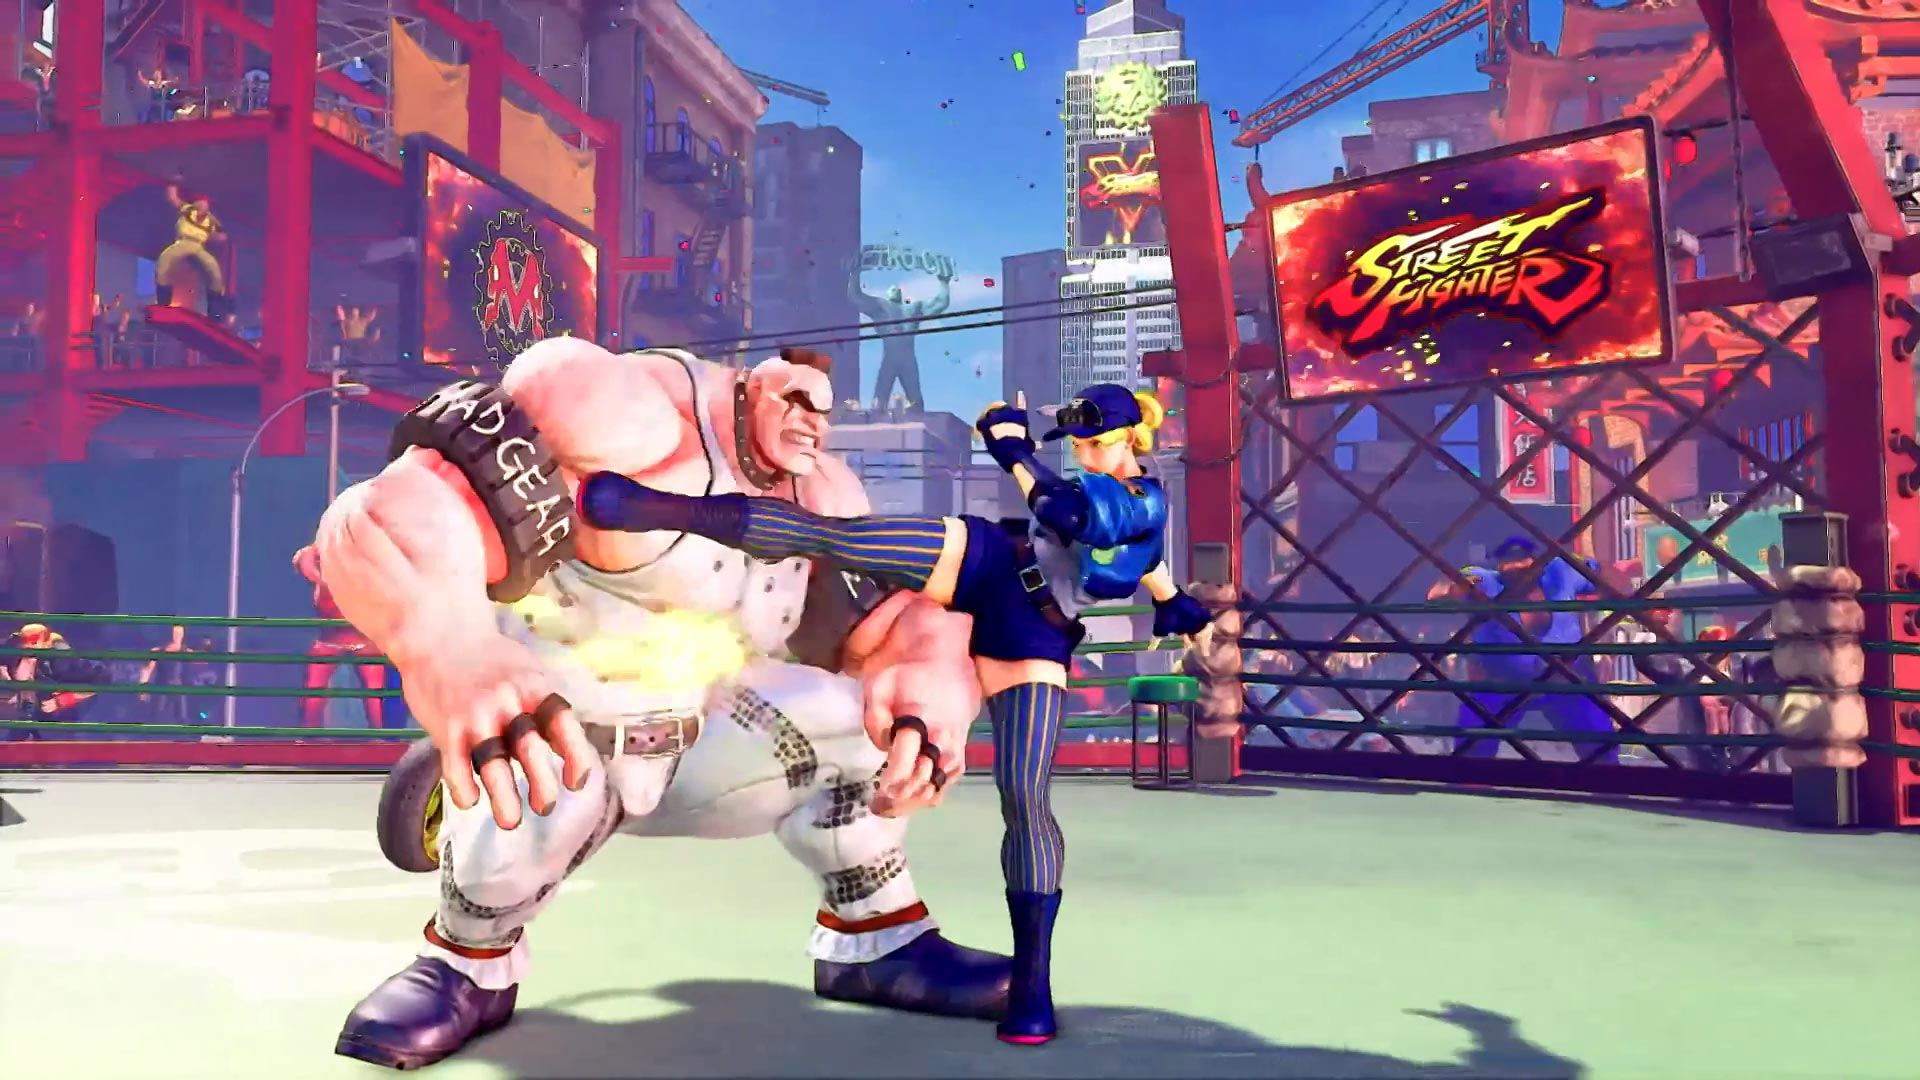 Street Fighter 5 leaked gallery of E. Honda, Lucia and Poison 13 out of 35 image gallery